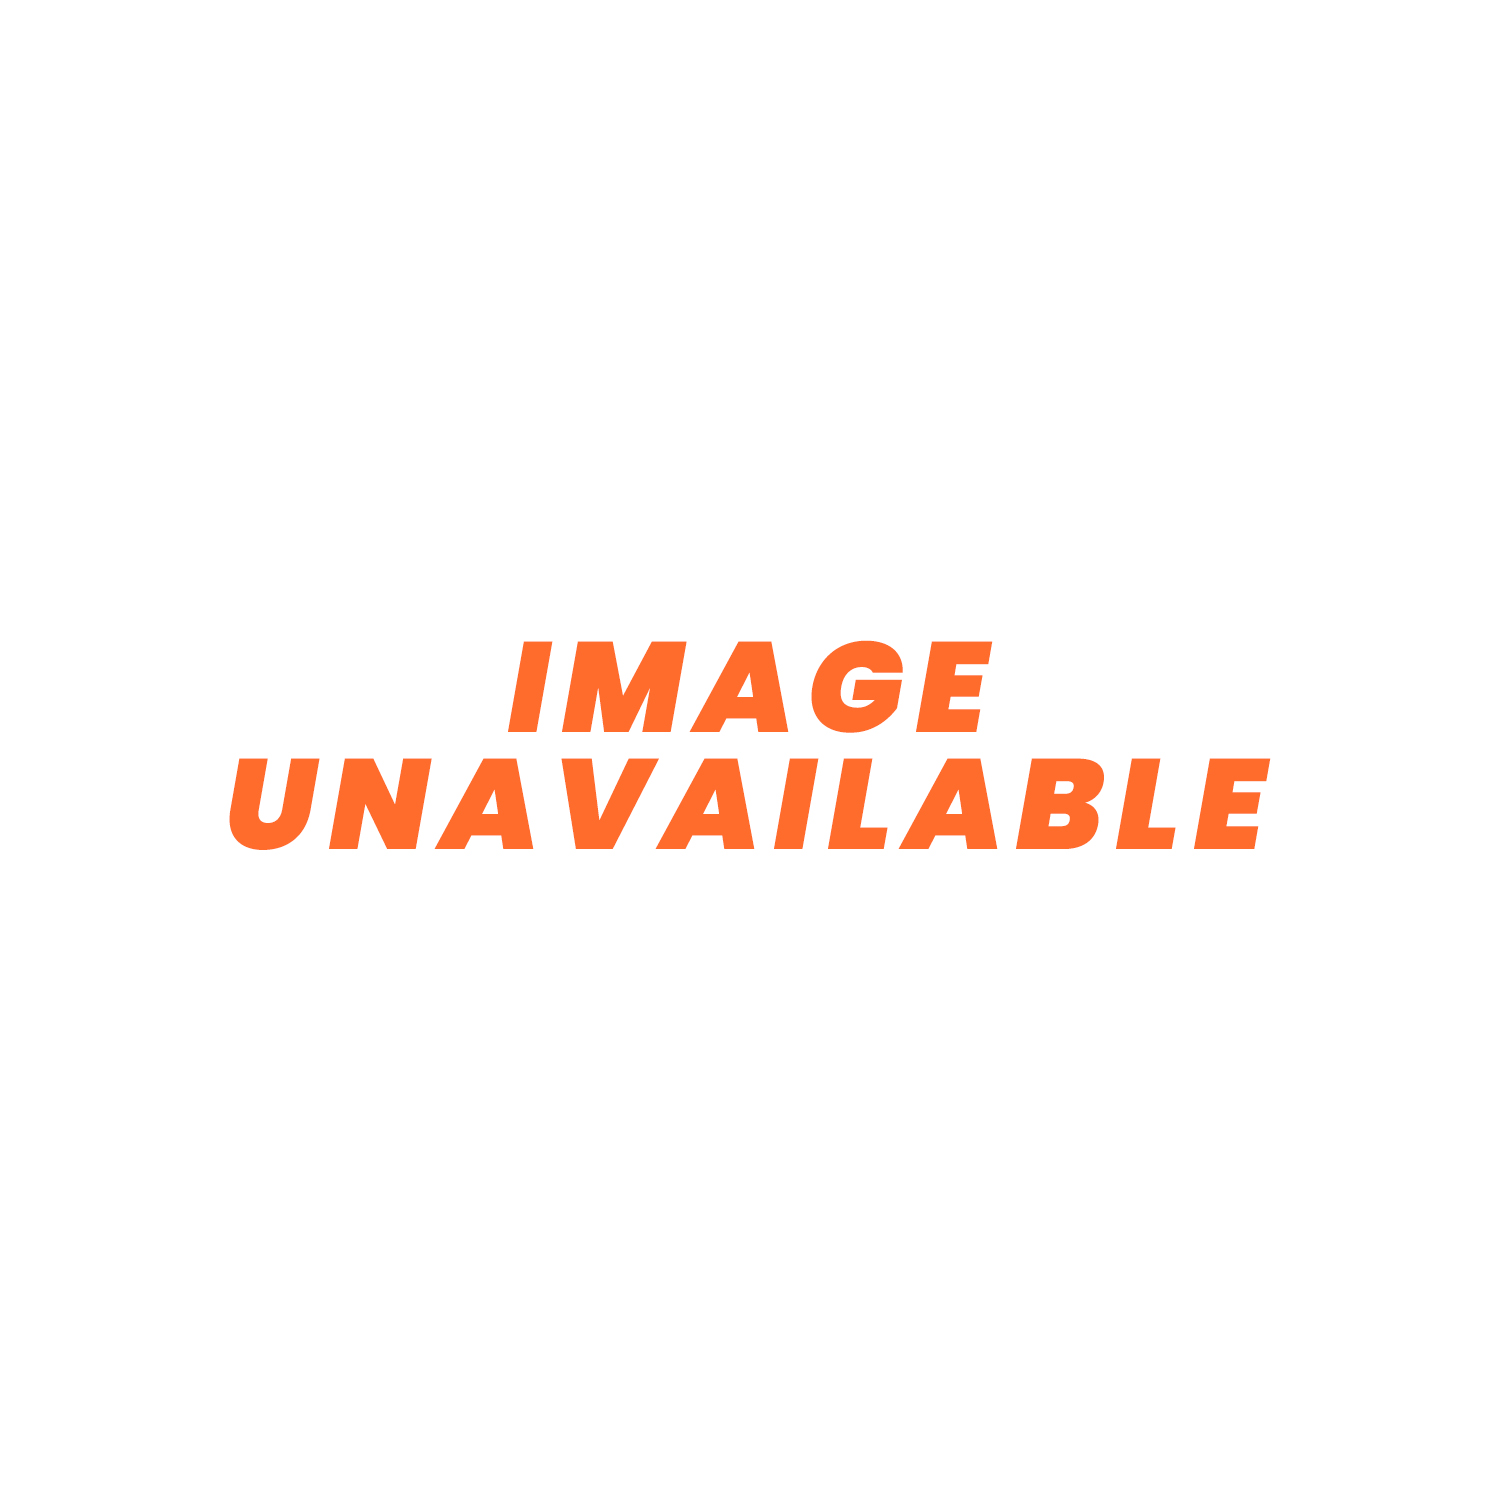 Replacement O-Ring for K20/K24 Electric Water Plate Kit & Davies Craig Adapters